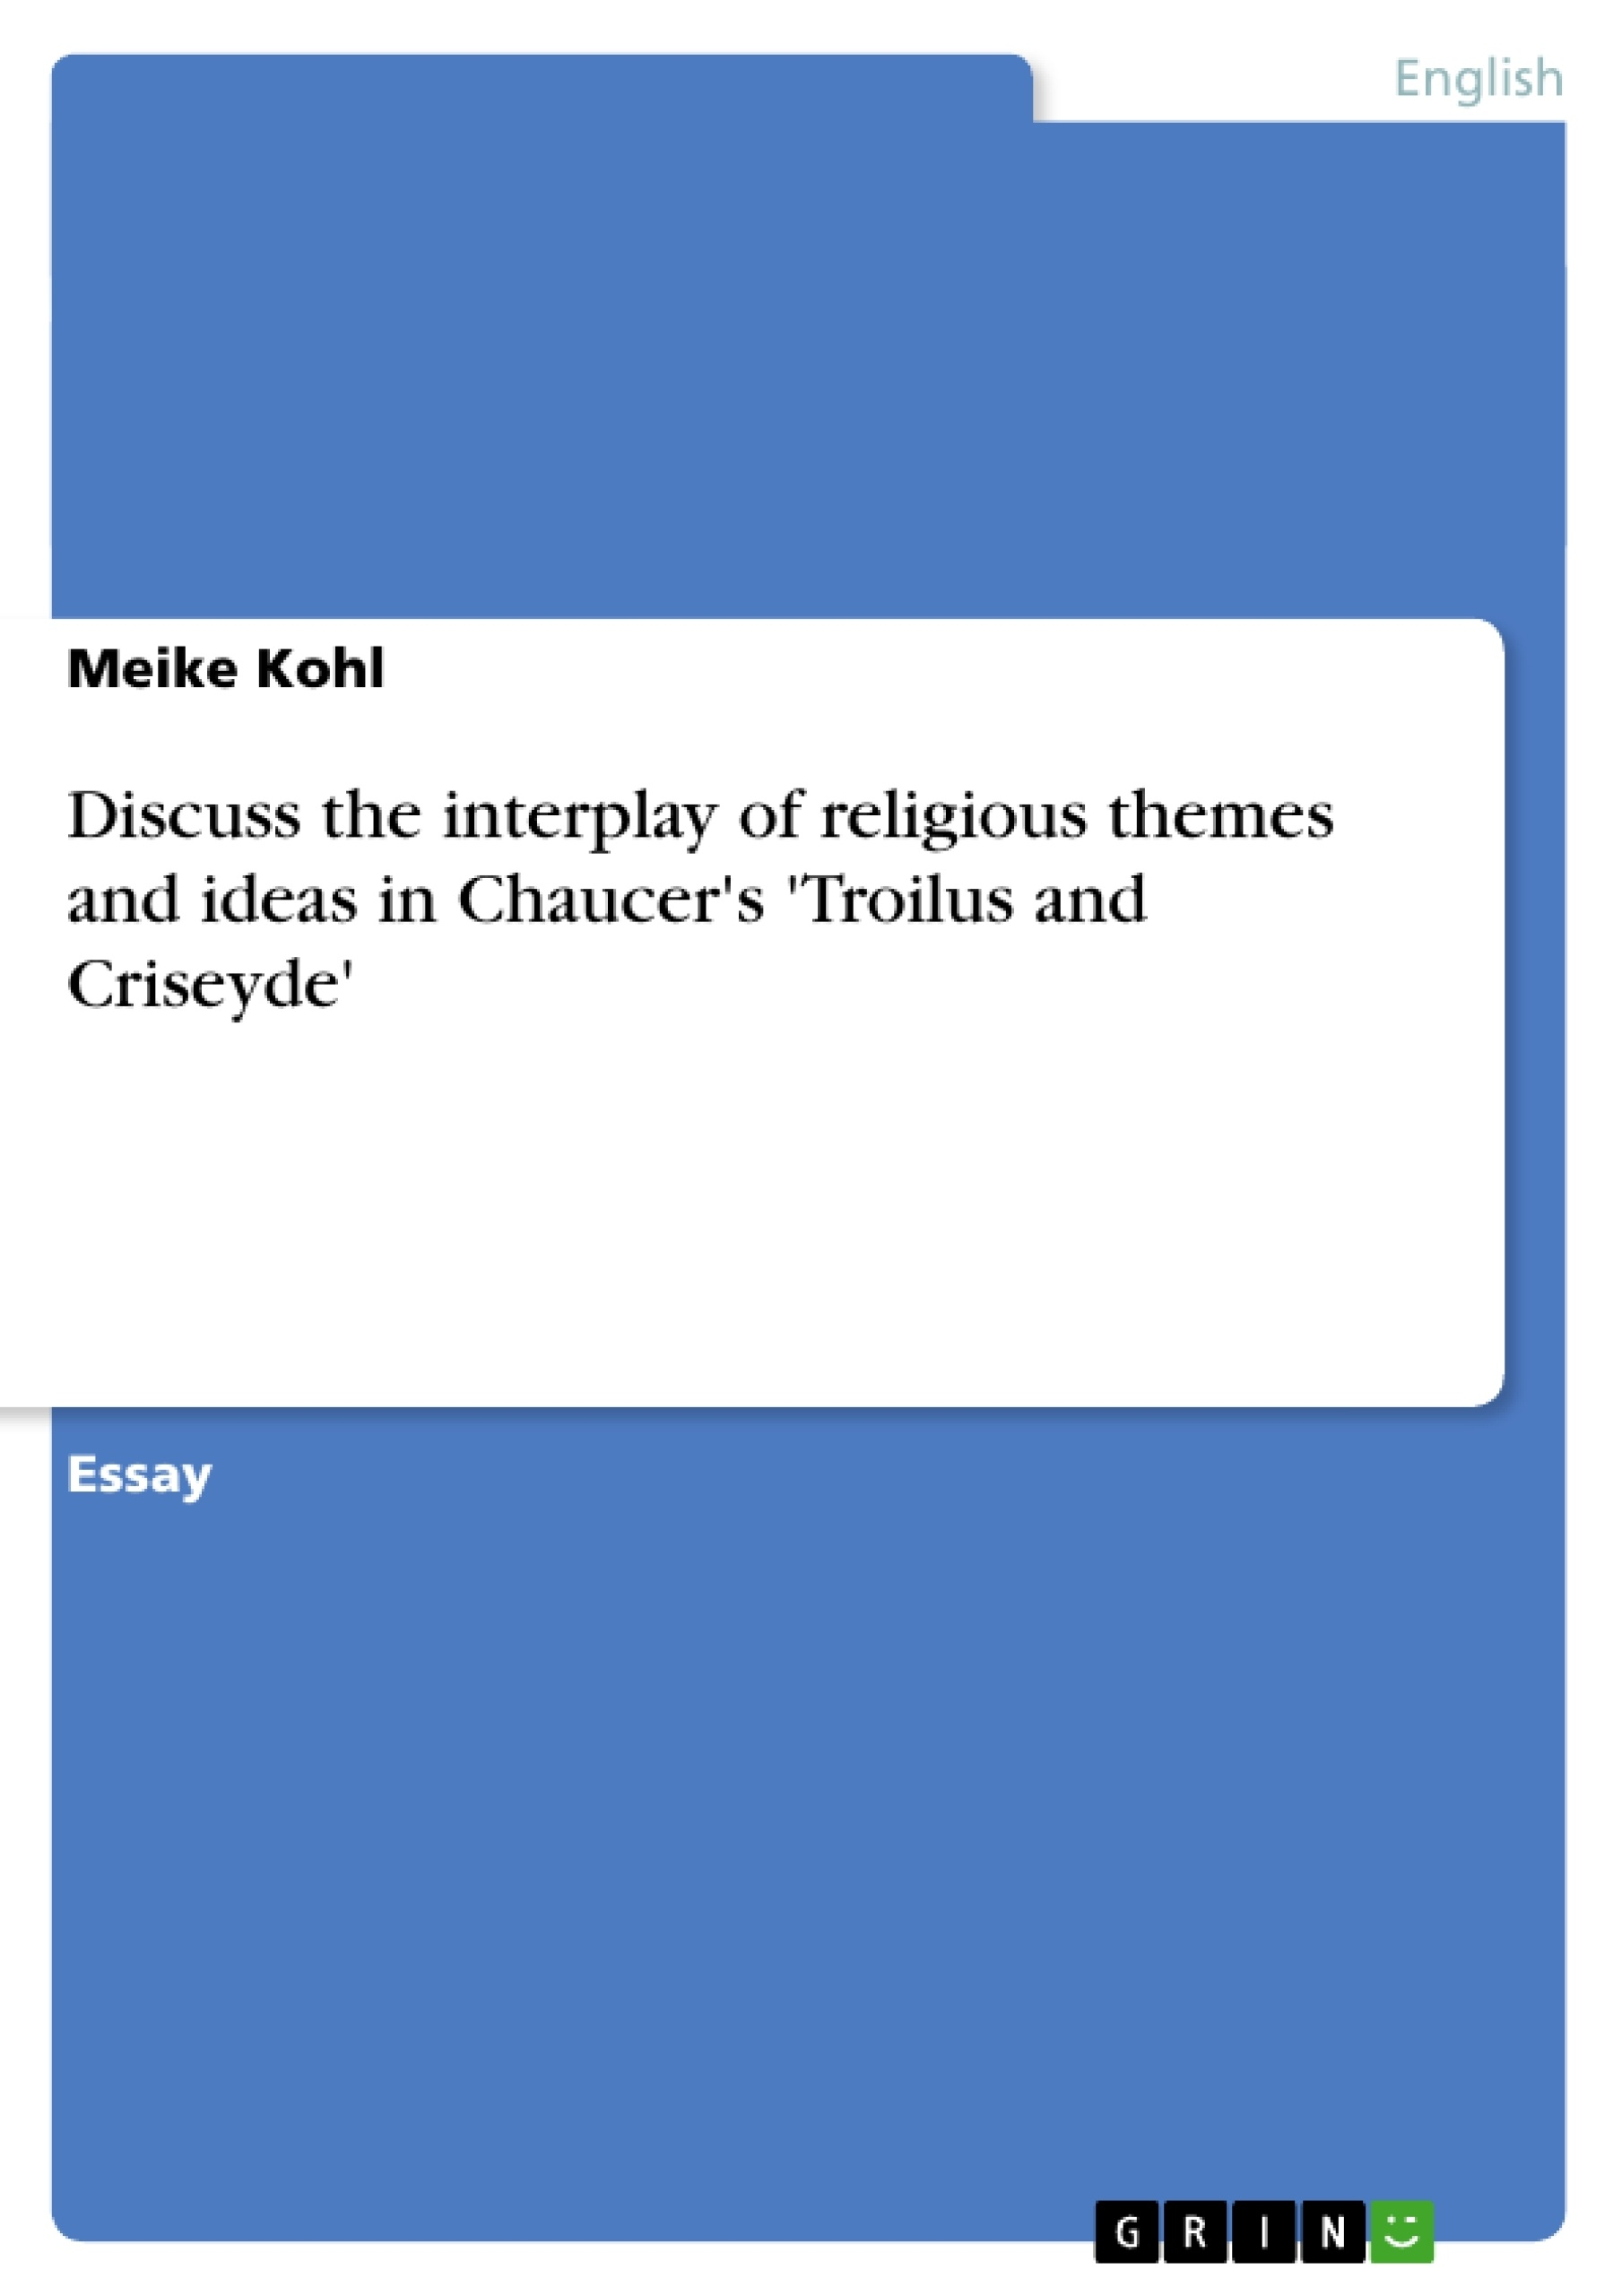 Religion thesis paper